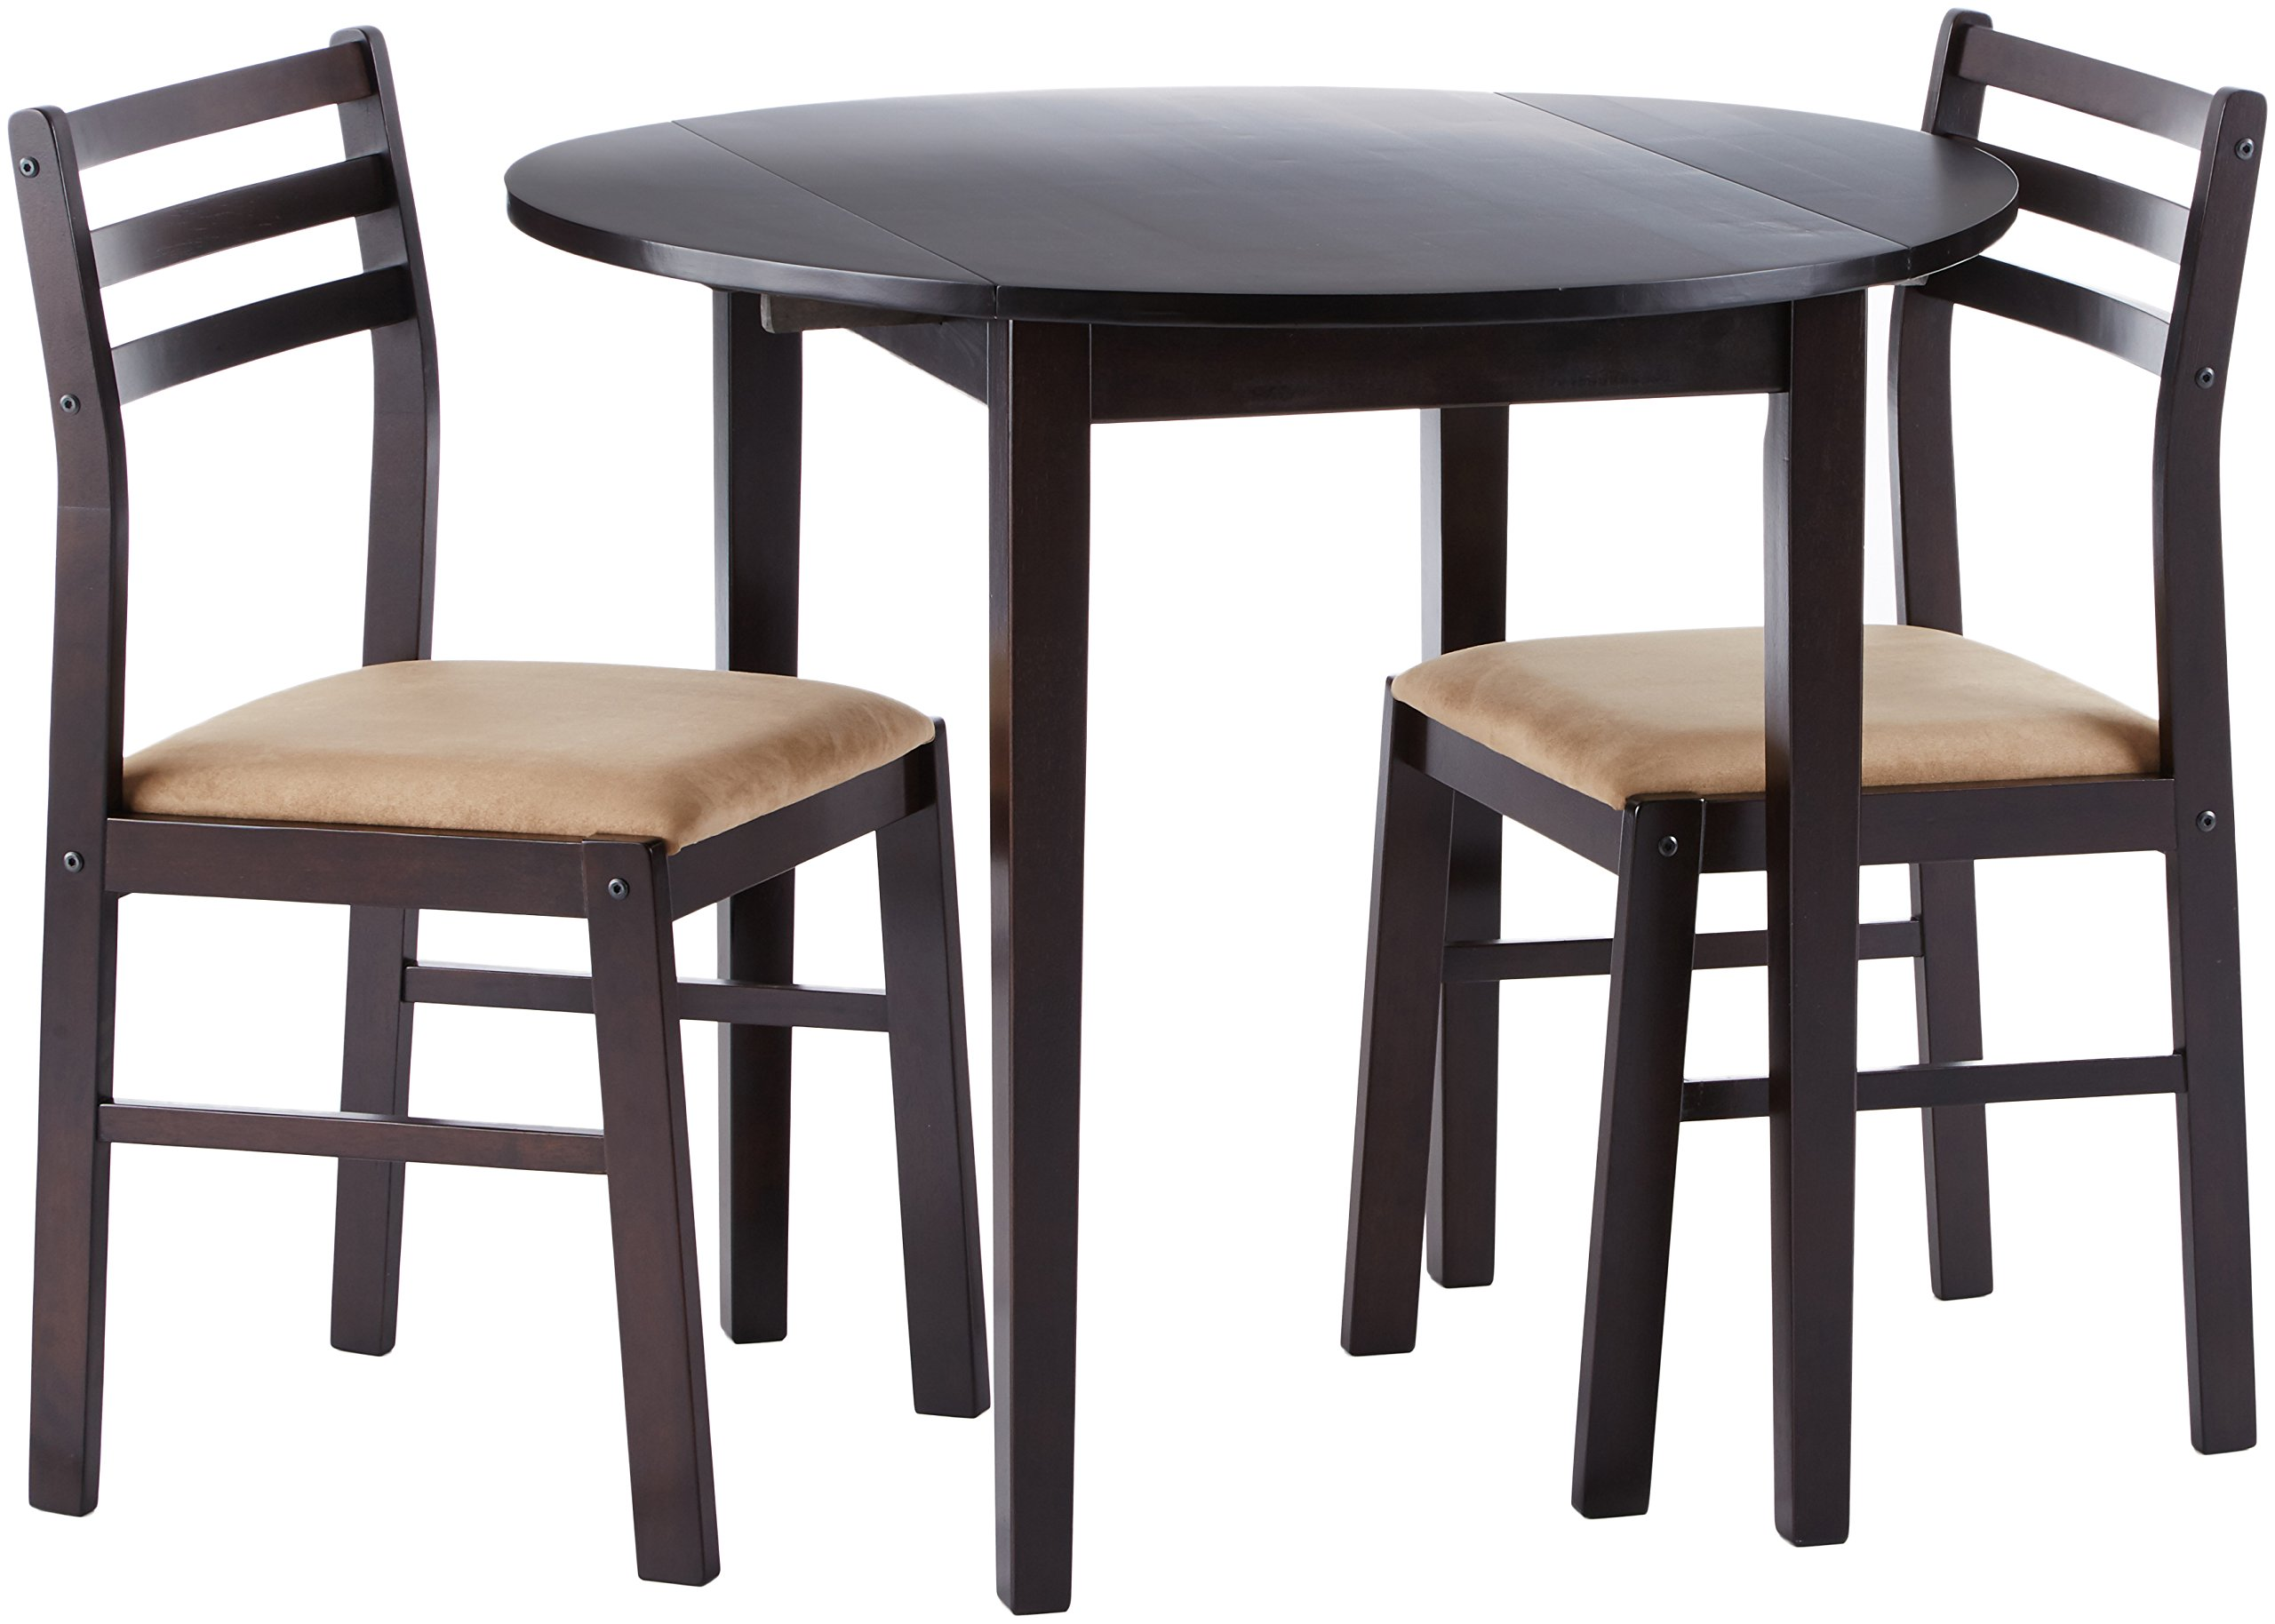 Coaster Home Furnishings 3-piece Dining Set with Drop Leaf Cappuccino and Tan by Coaster Home Furnishings